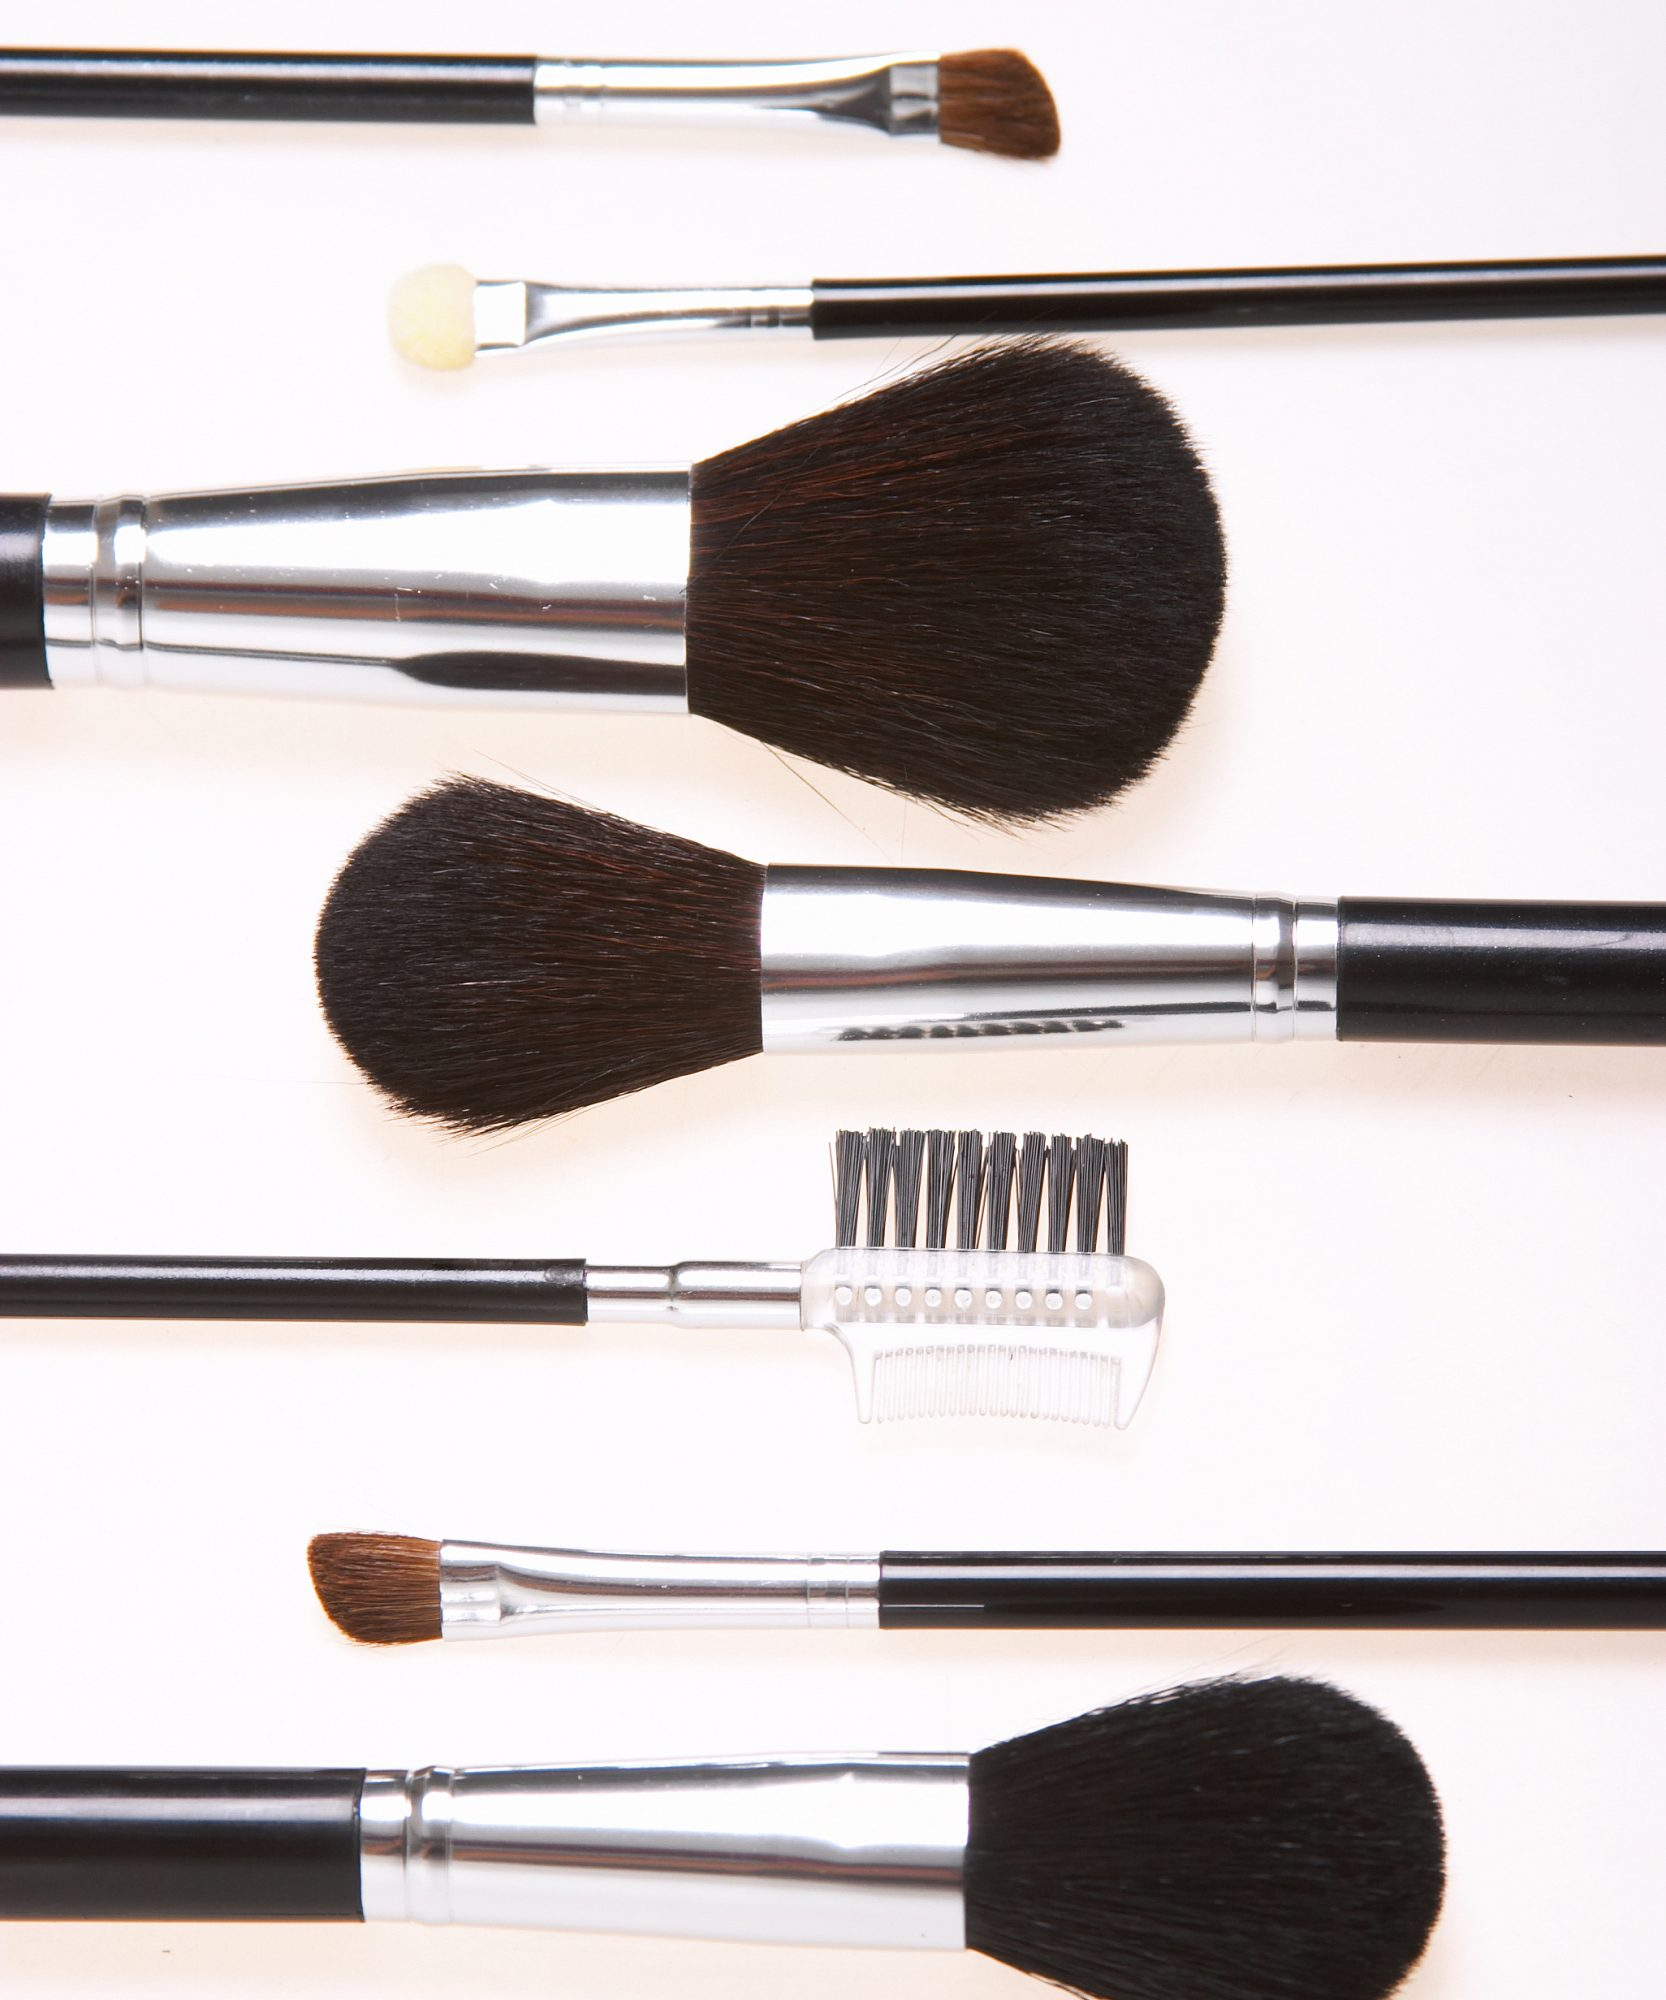 Cleaning Makeup Brushes Lead